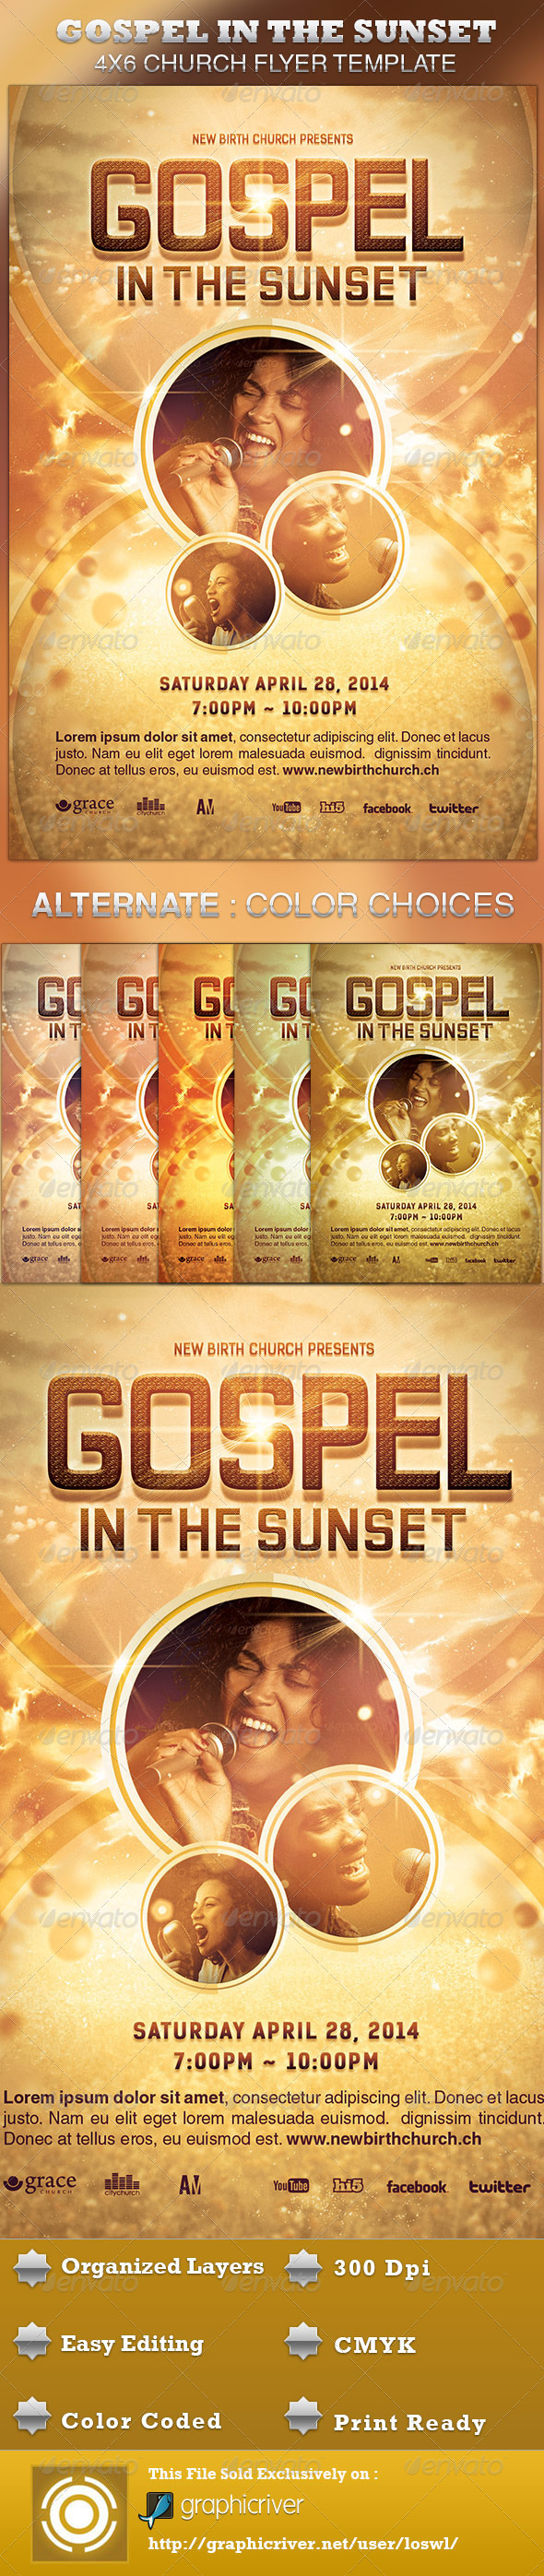 Gospel in the Sunset Church Flyer Template - Church Flyers